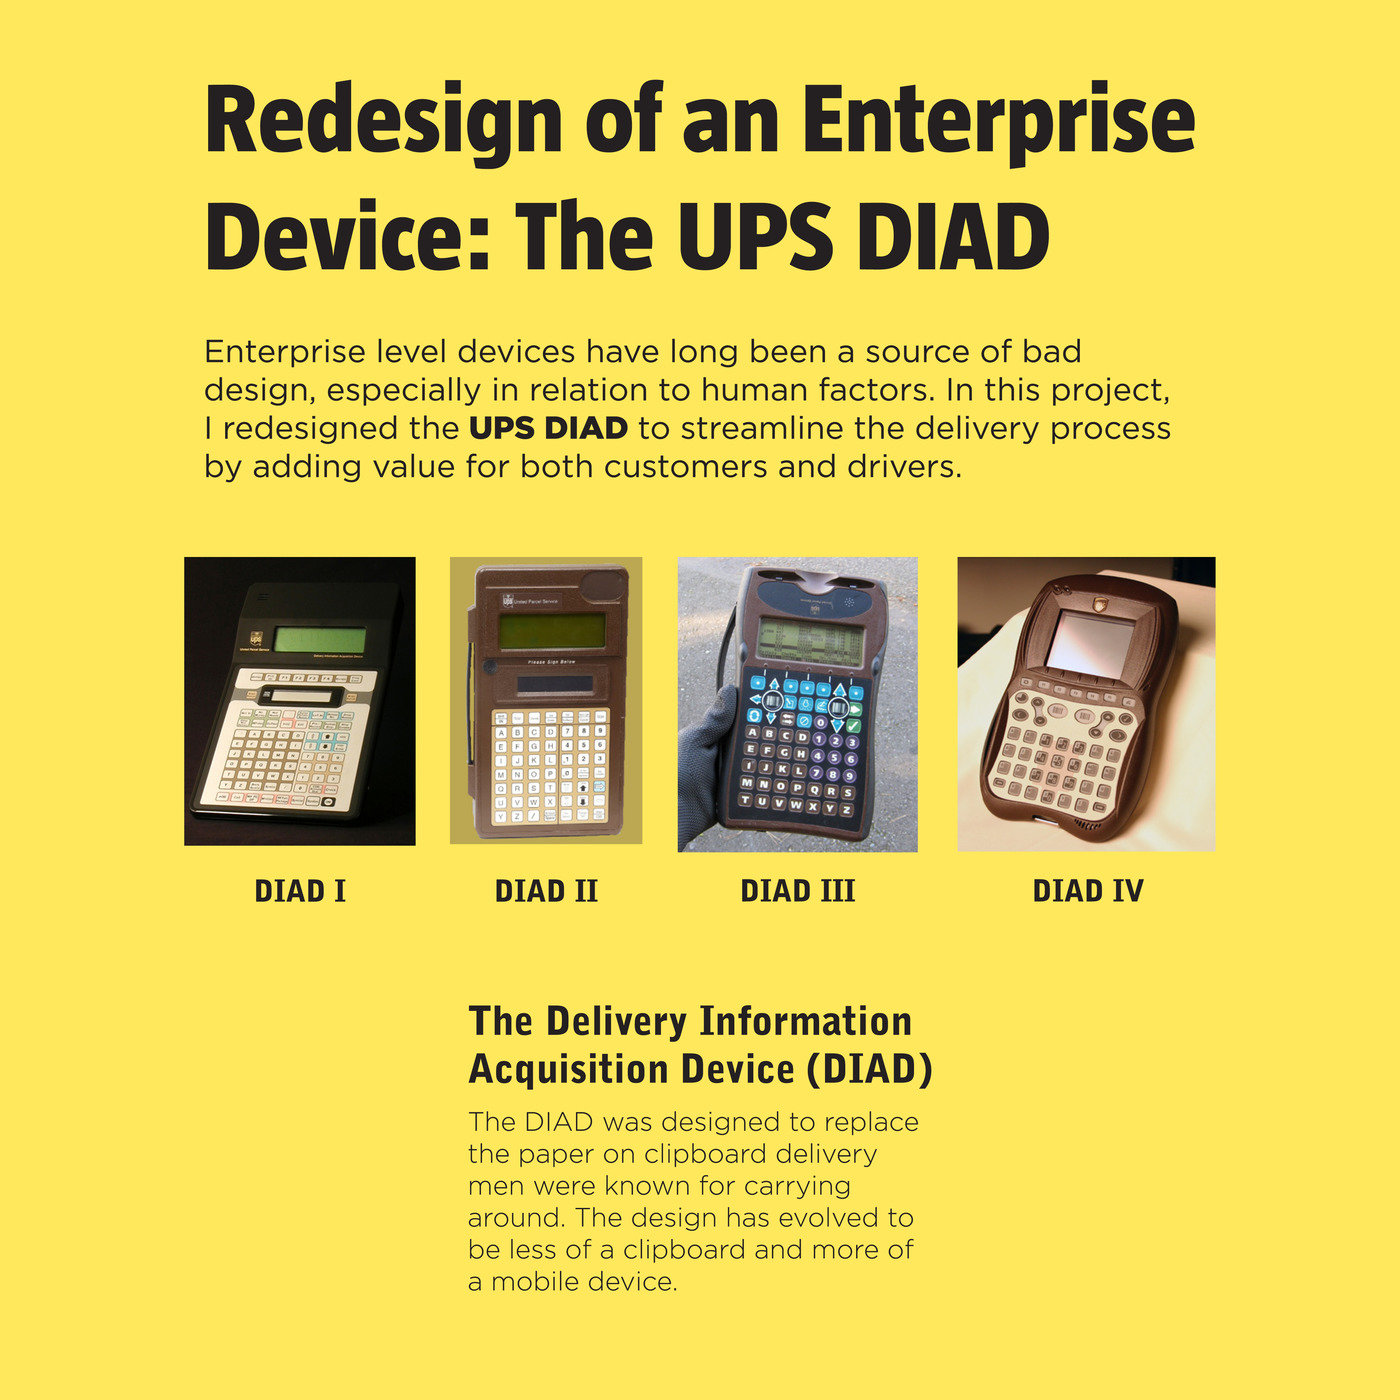 Ups Diad Delivery Information Acquisition Device By